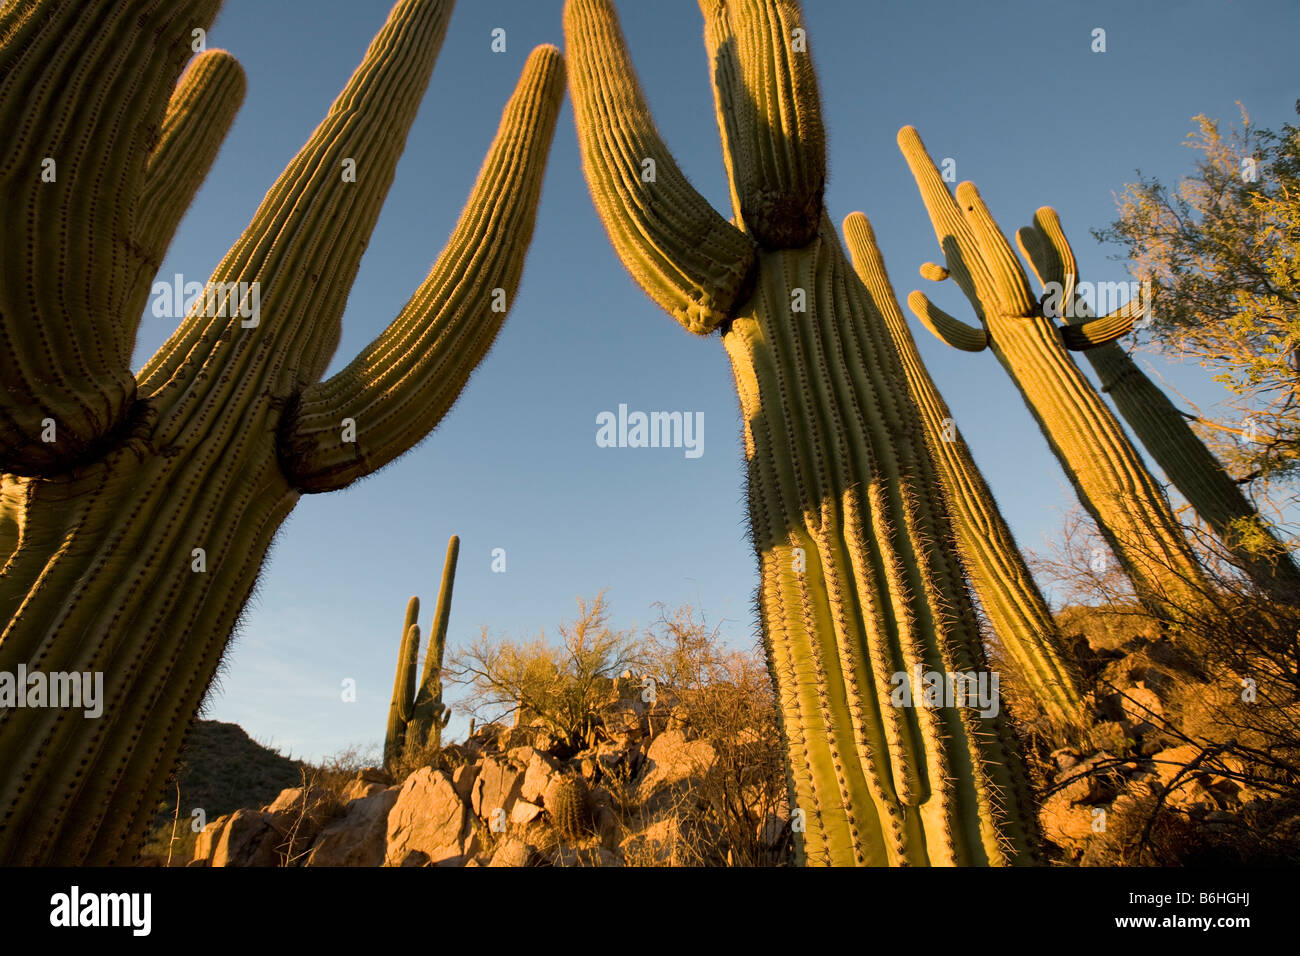 Los Sahuaros gigante Saguaro National Park West Tucson Arizona Imagen De Stock